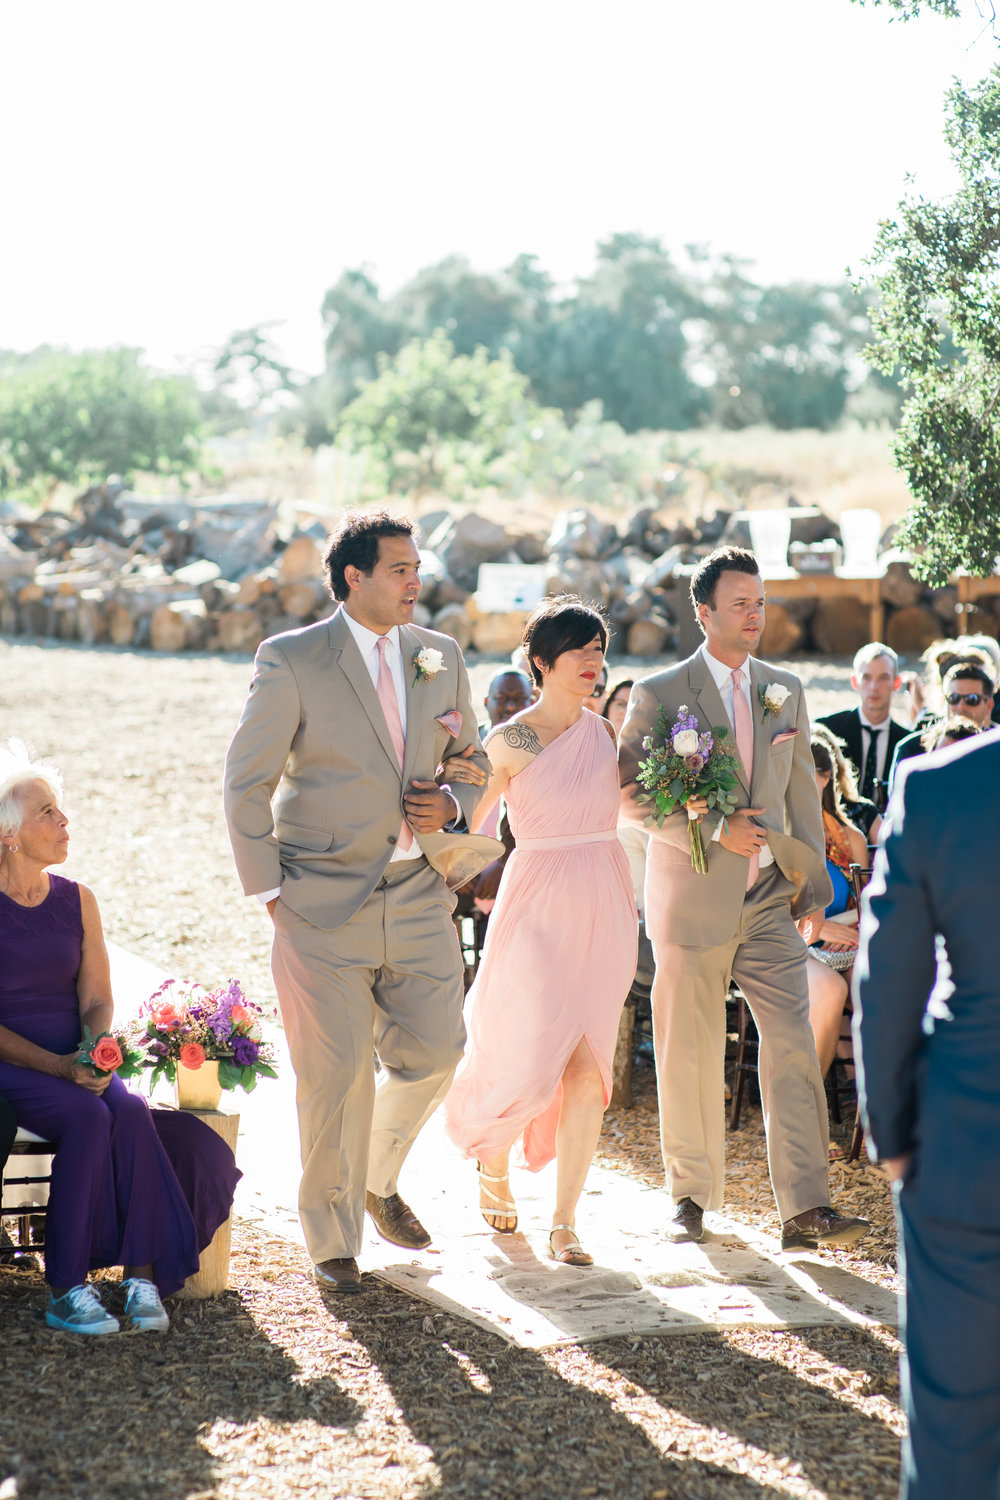 Jenny Quicksall Photography_www.jennyquicksall.com_California Wedding Photographer_Highland Springs Ranch and Inn Resort_Cherry Valley California (35).JPG